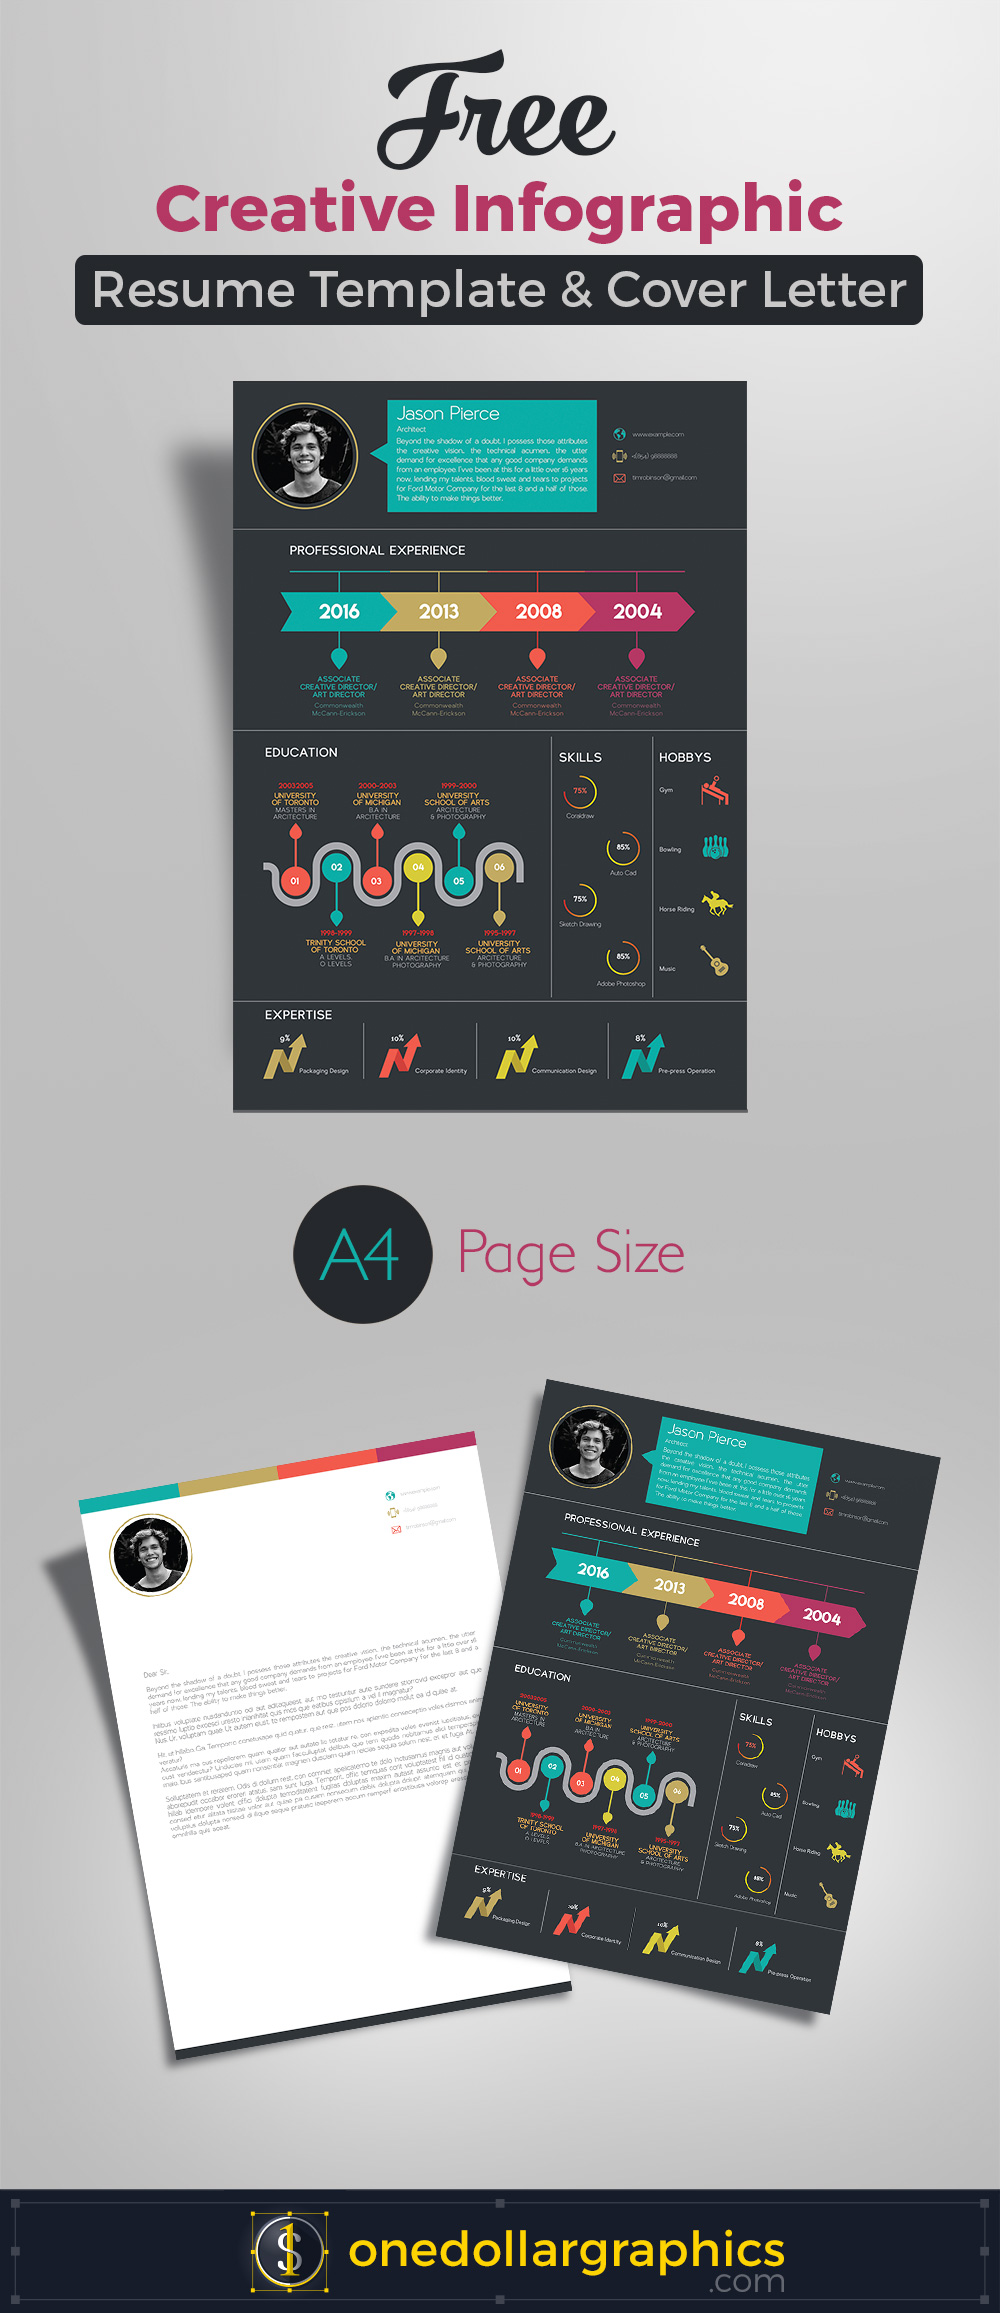 Free Creative Infographic Resume Template With Cover Letter INDD File